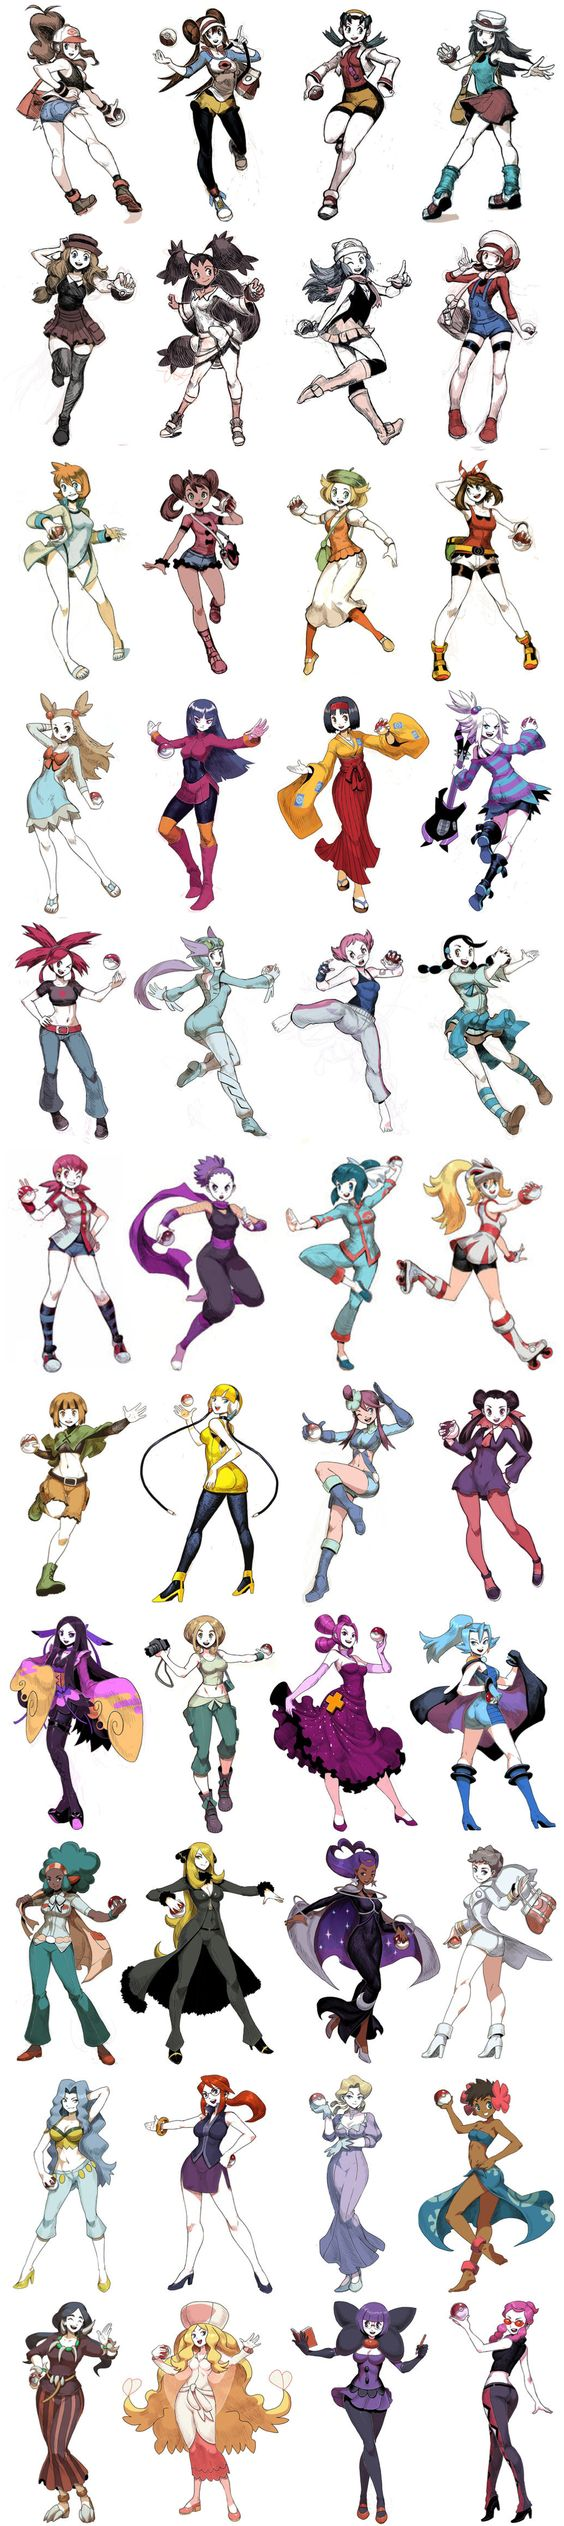 Female Pokemon gym leaders.